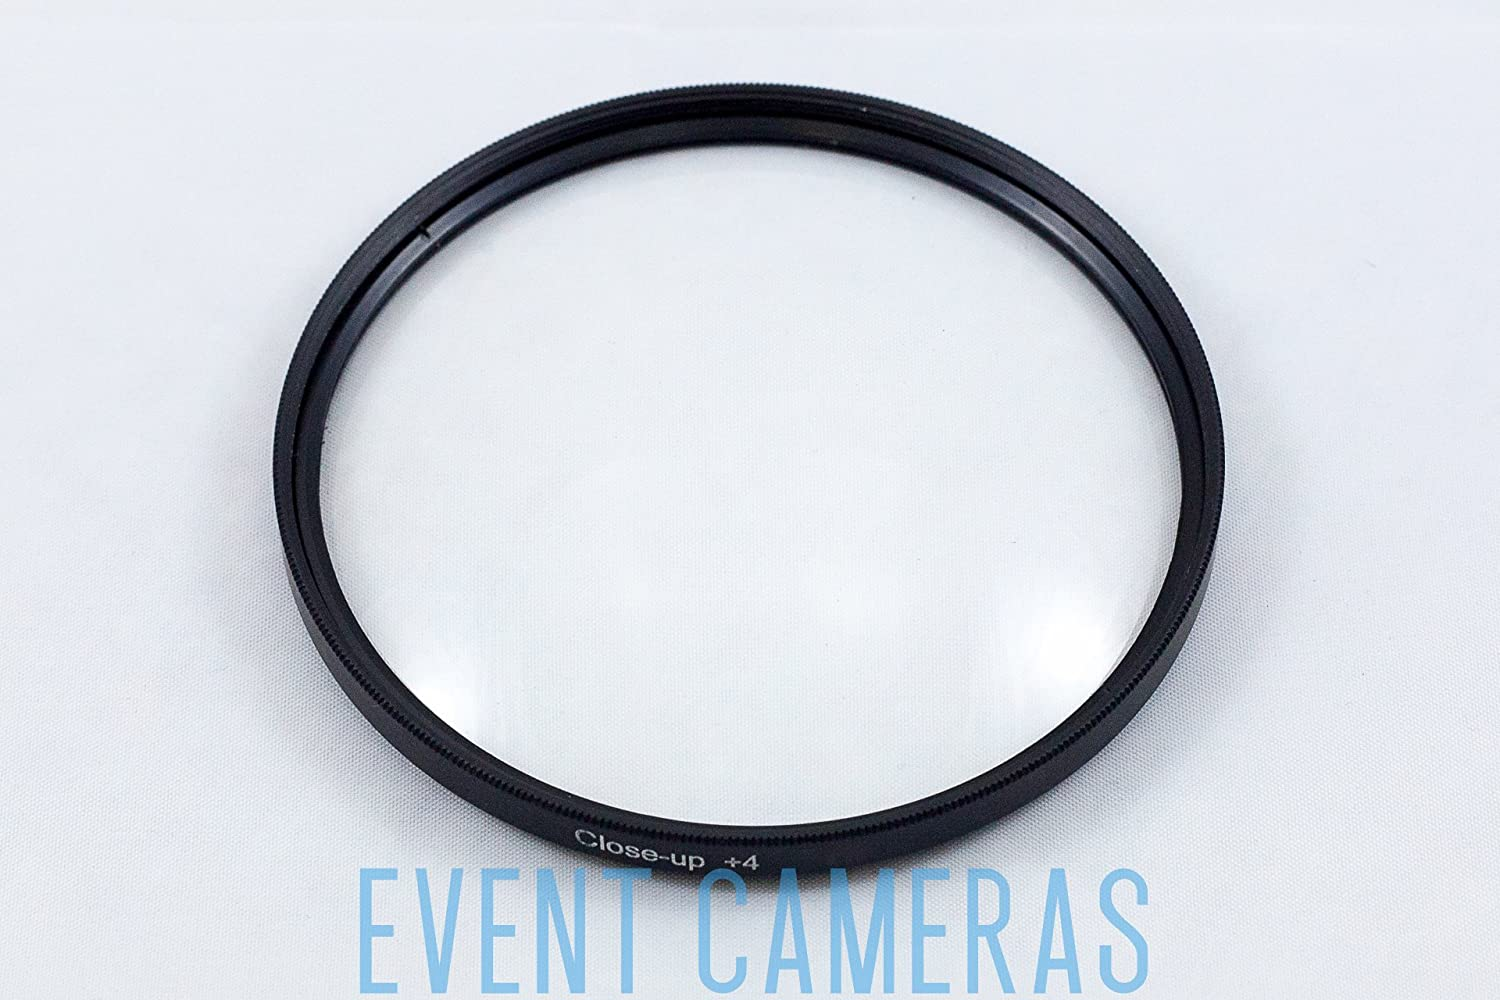 NGO 49mm 4 Filter Close Up Kit 8 w//Pouch /& Cleaning Kit FK006-49 4 2 1